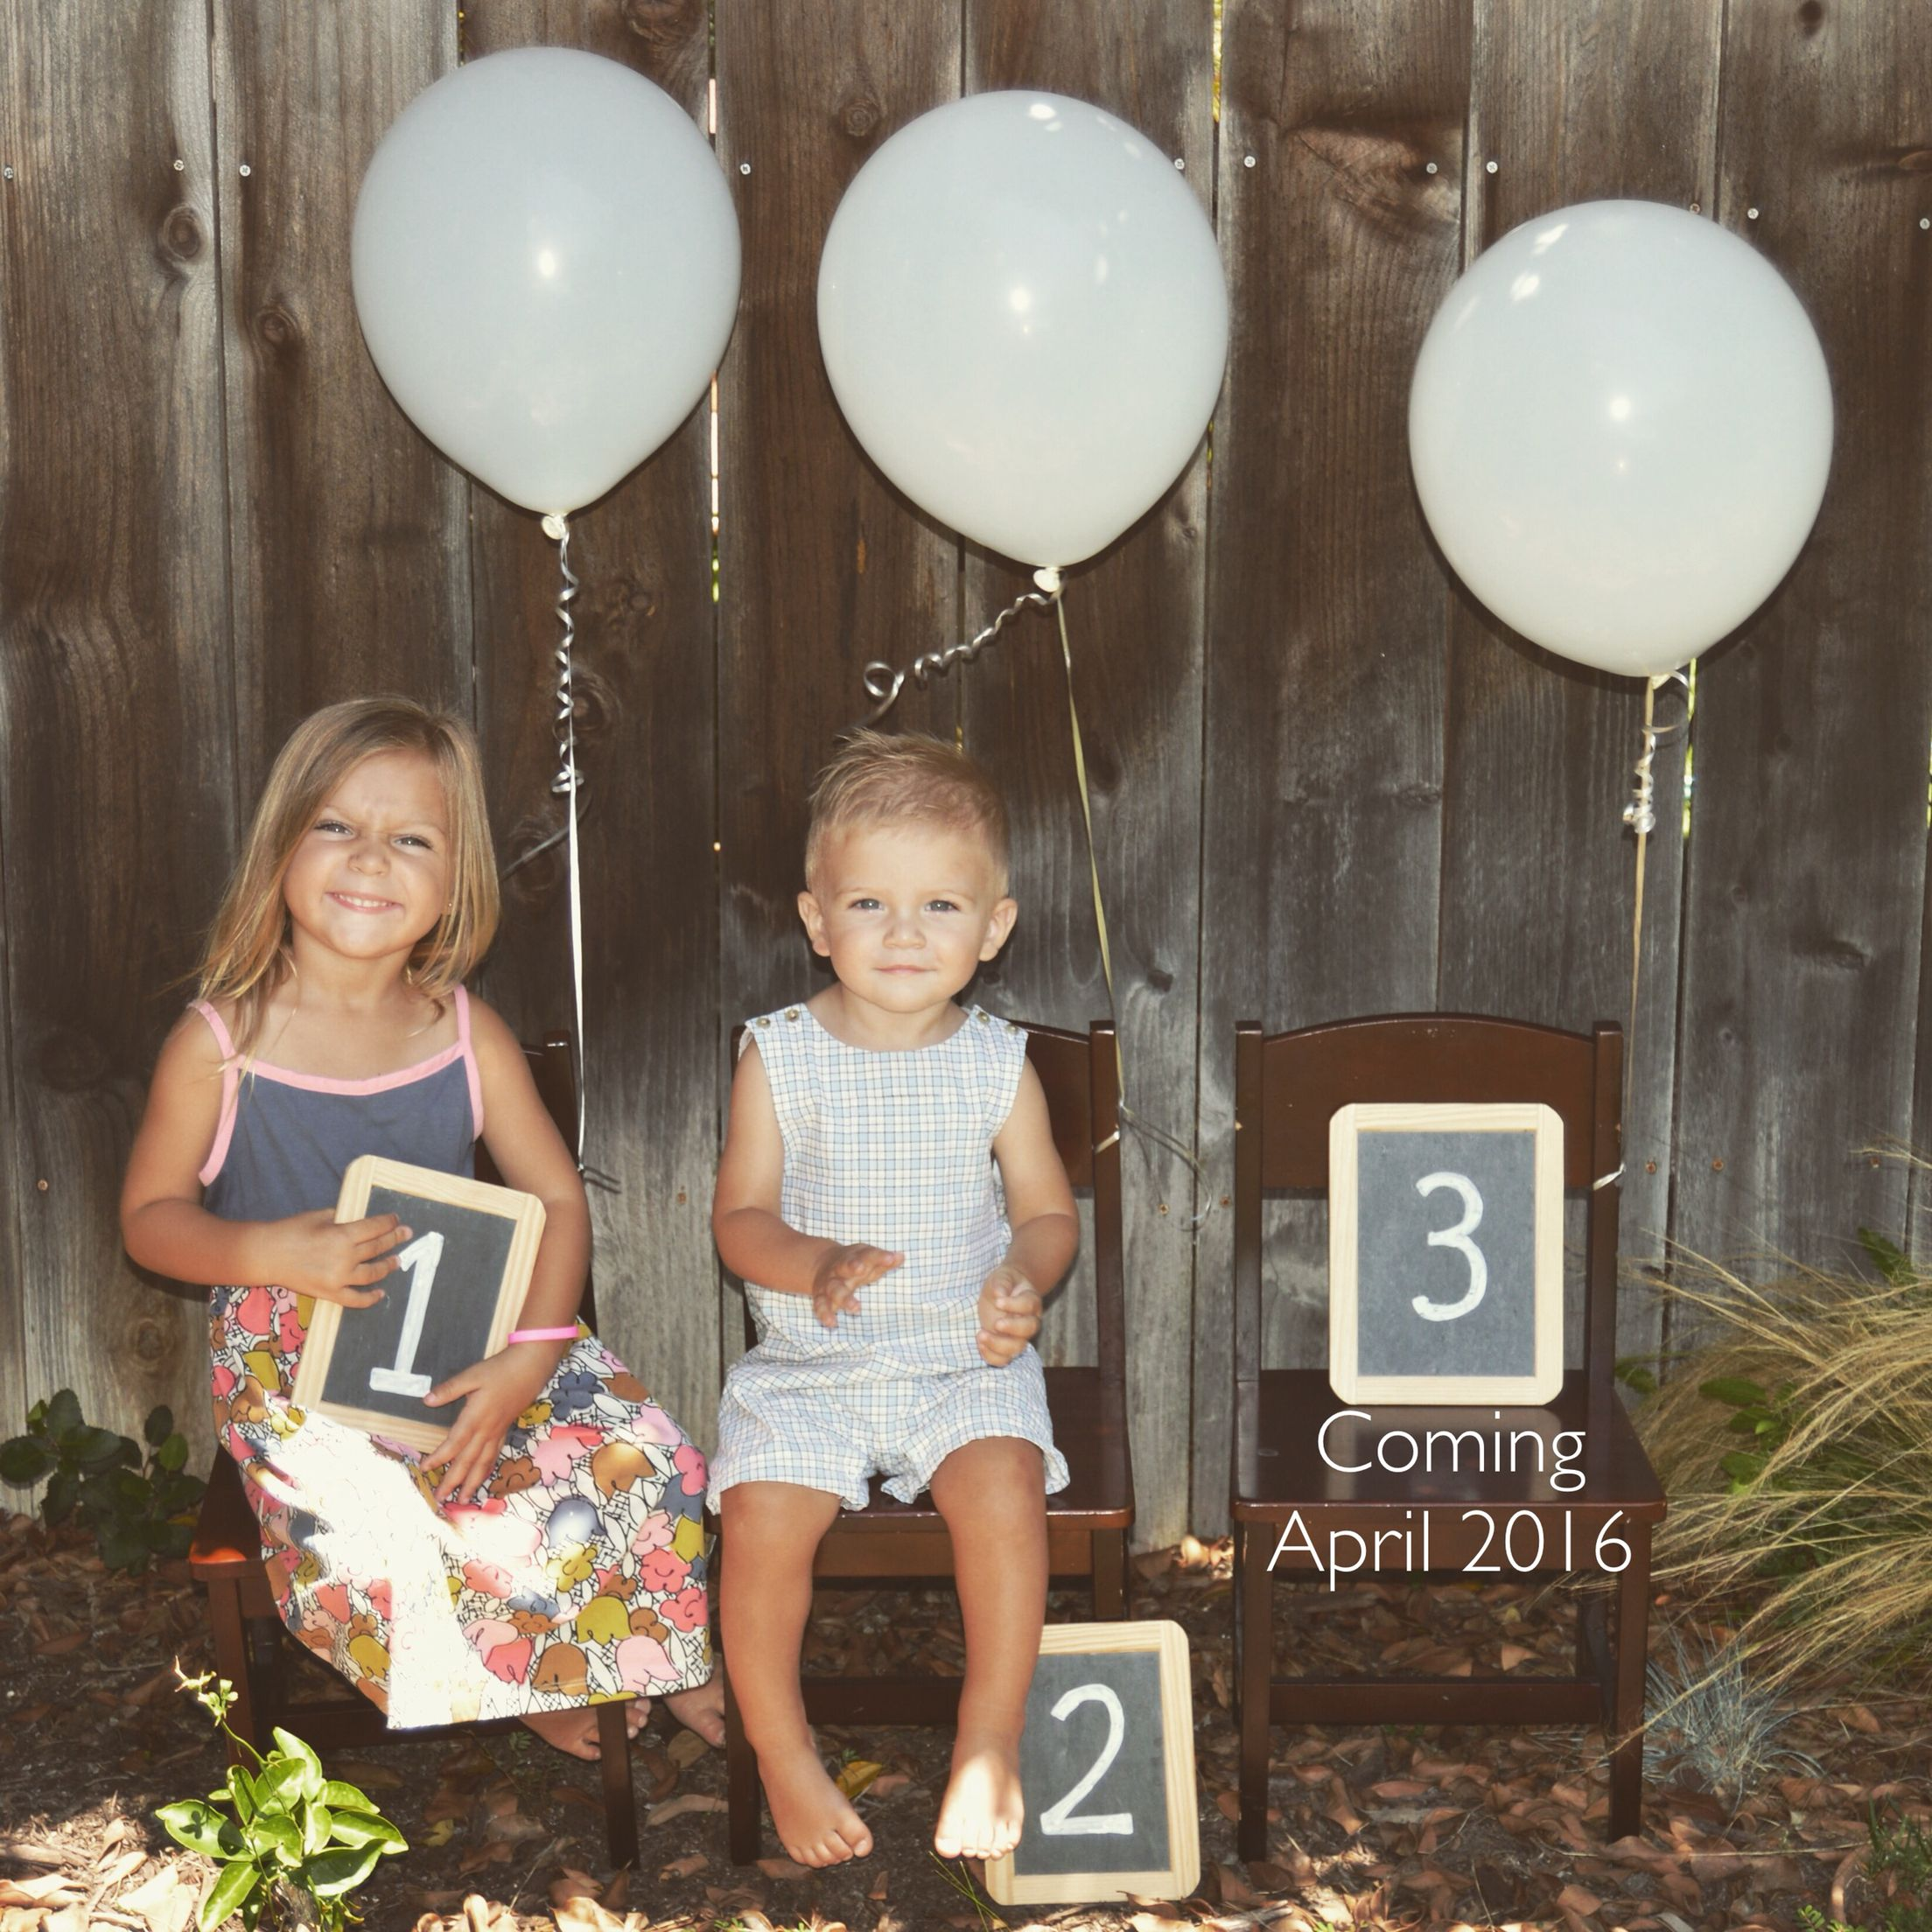 This Sweet Pregnancy Reveal for Baby 3 Is a Family Affair forecasting